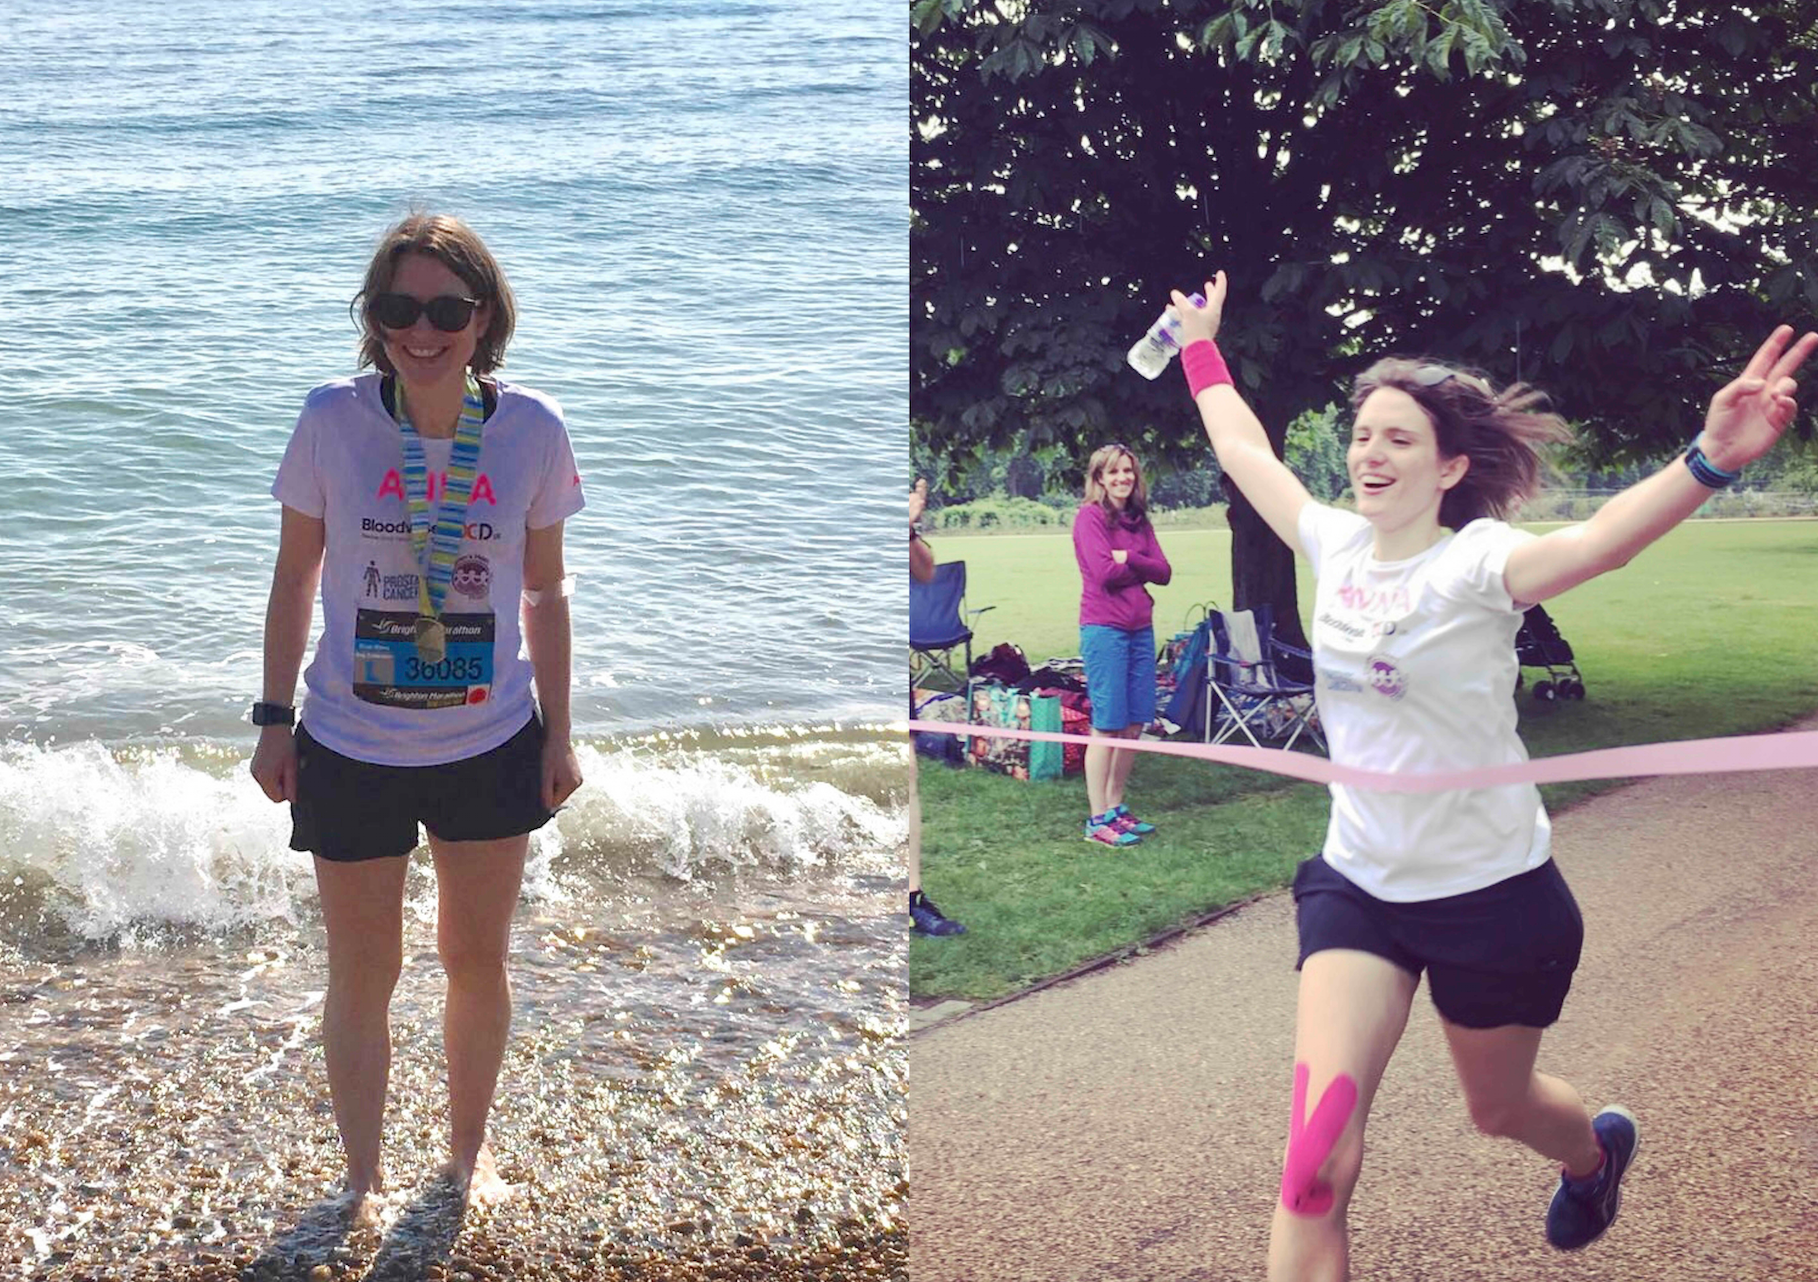 Anna after the Brighton Marathon in April 2017 (LEFT) and finishing her marathon relay in May 2017 (RIGHT)